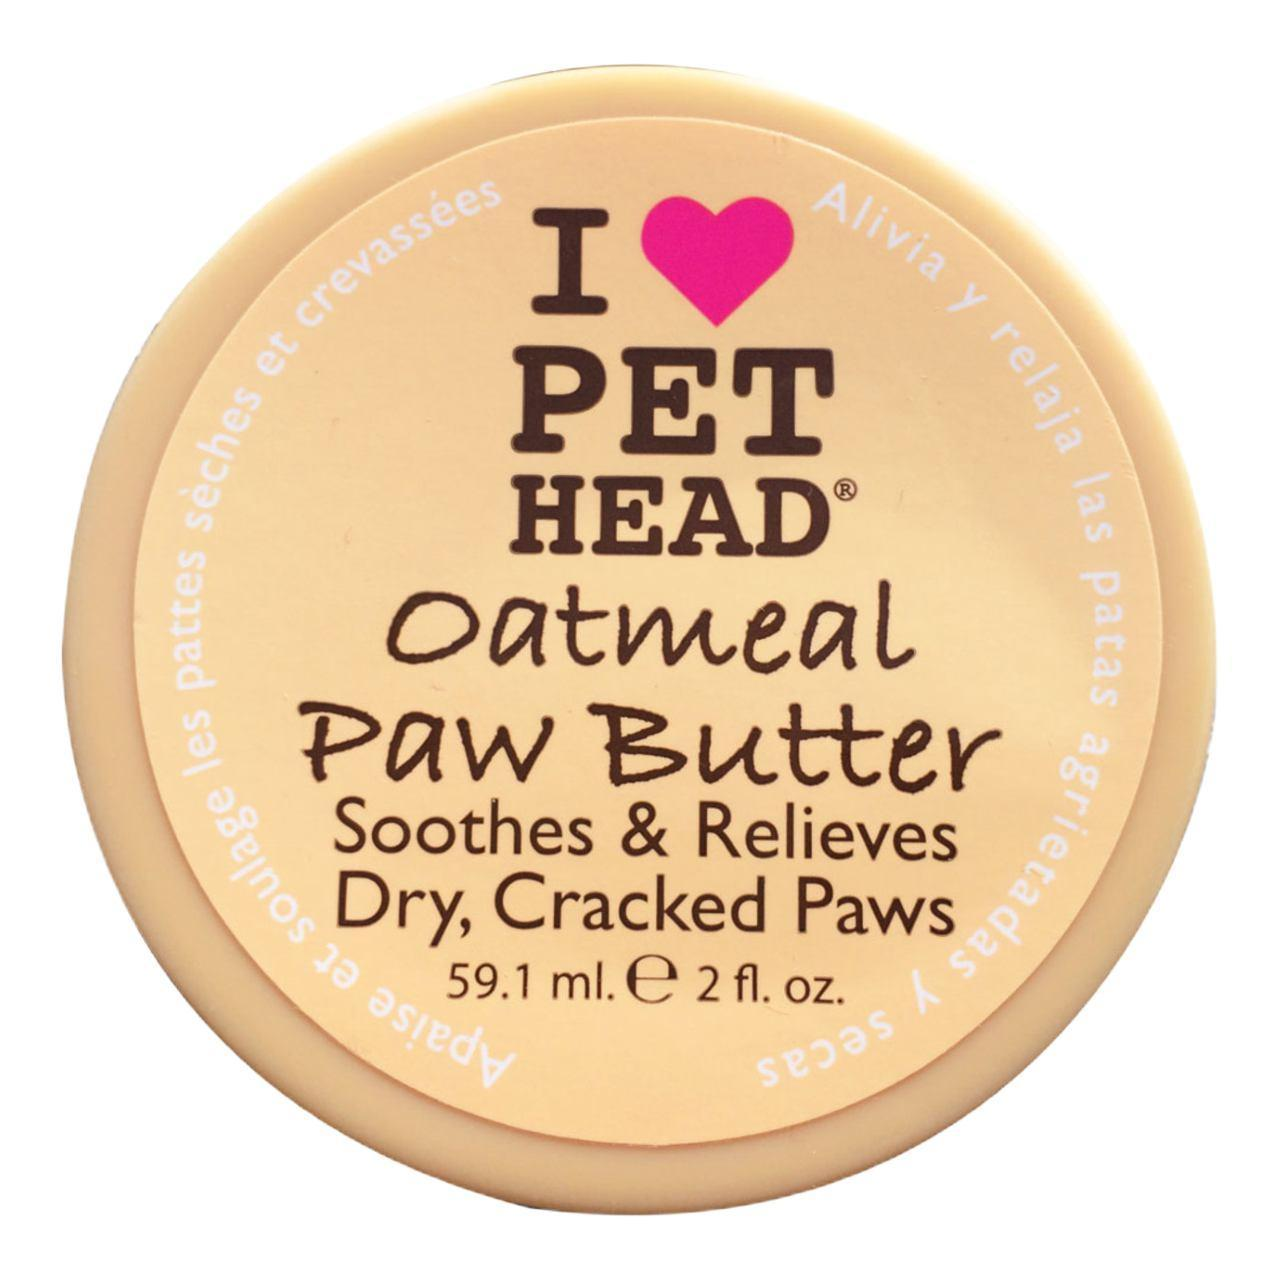 An image of Pet Head Oatmeal Paw Butter